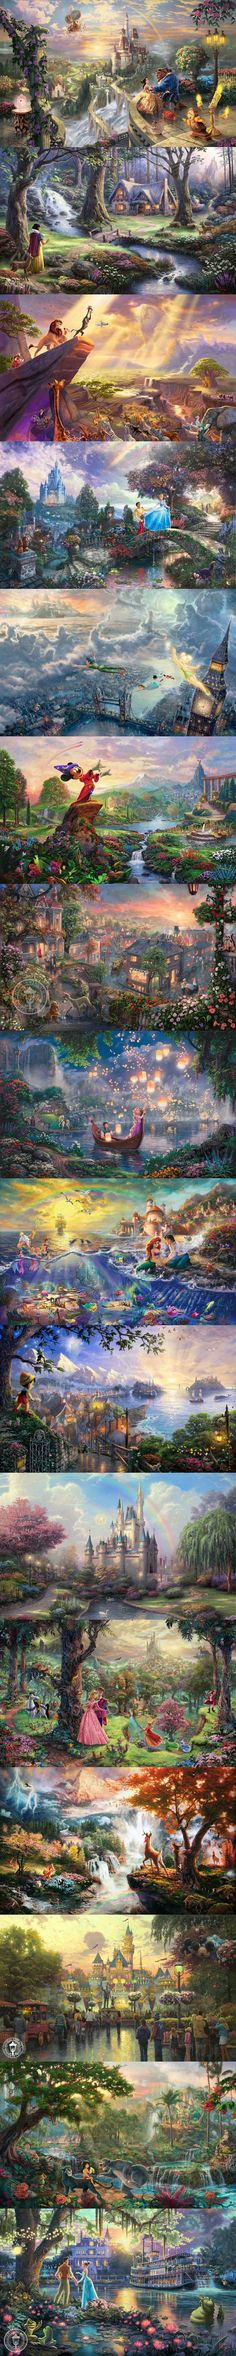 Disney Dreams Collection By Thomas Kinkade.